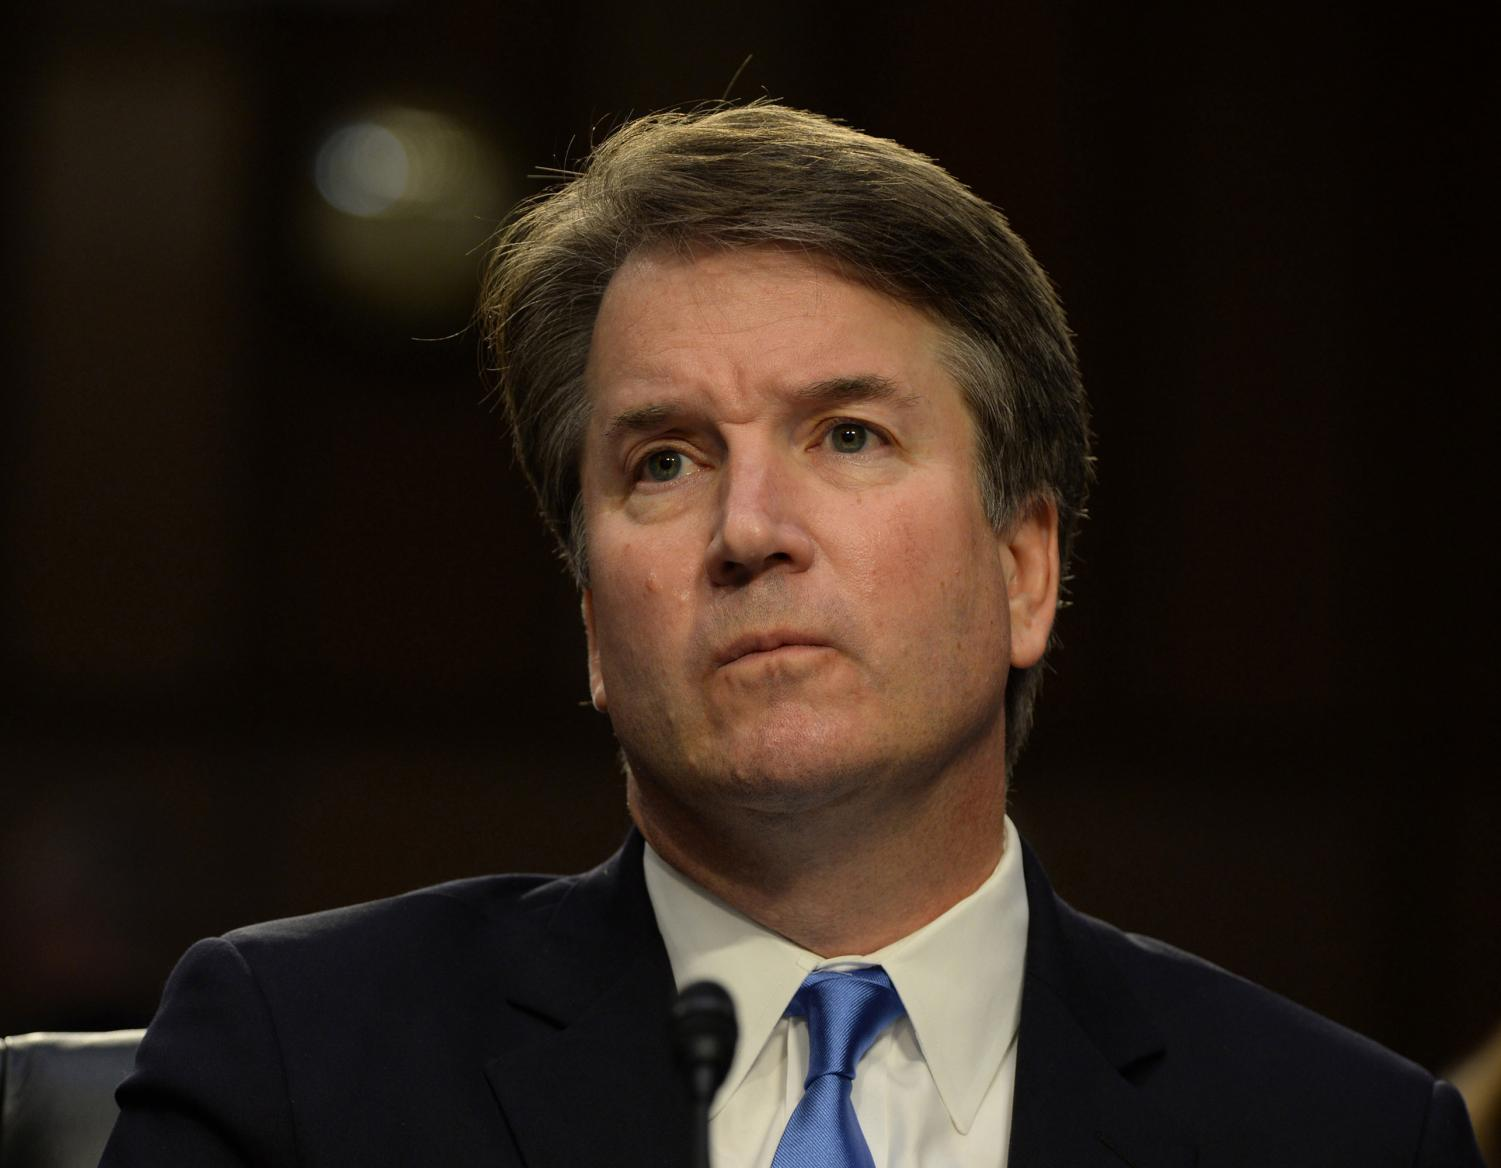 Opinion columnist Caleb Stekl discusses why he believes the confirmation of Brett Kavanaugh is harmful to women, the working class and healthcare.